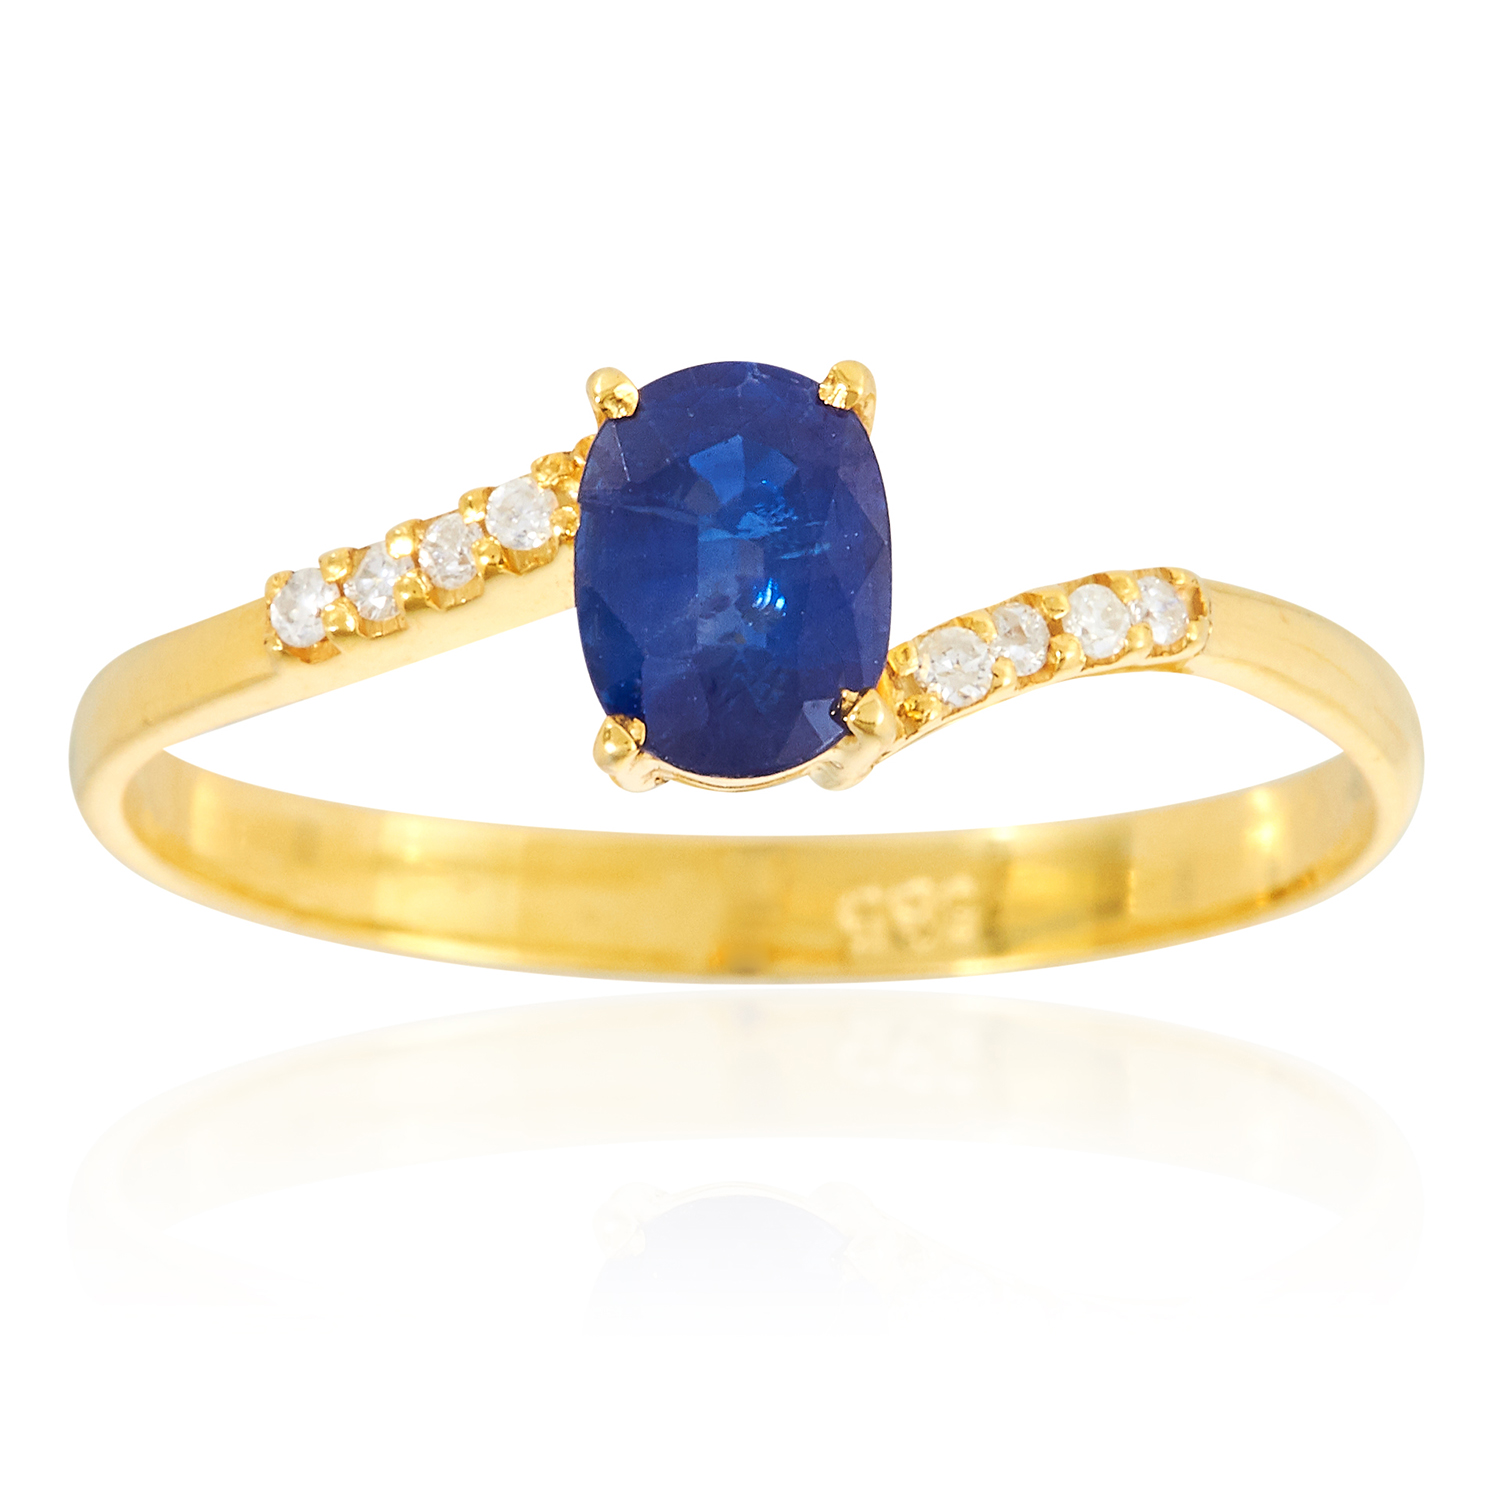 A SAPPHIRE AND DIAMOND RING in 14ct yellow gold, set with an oval cut sapphire between eight round